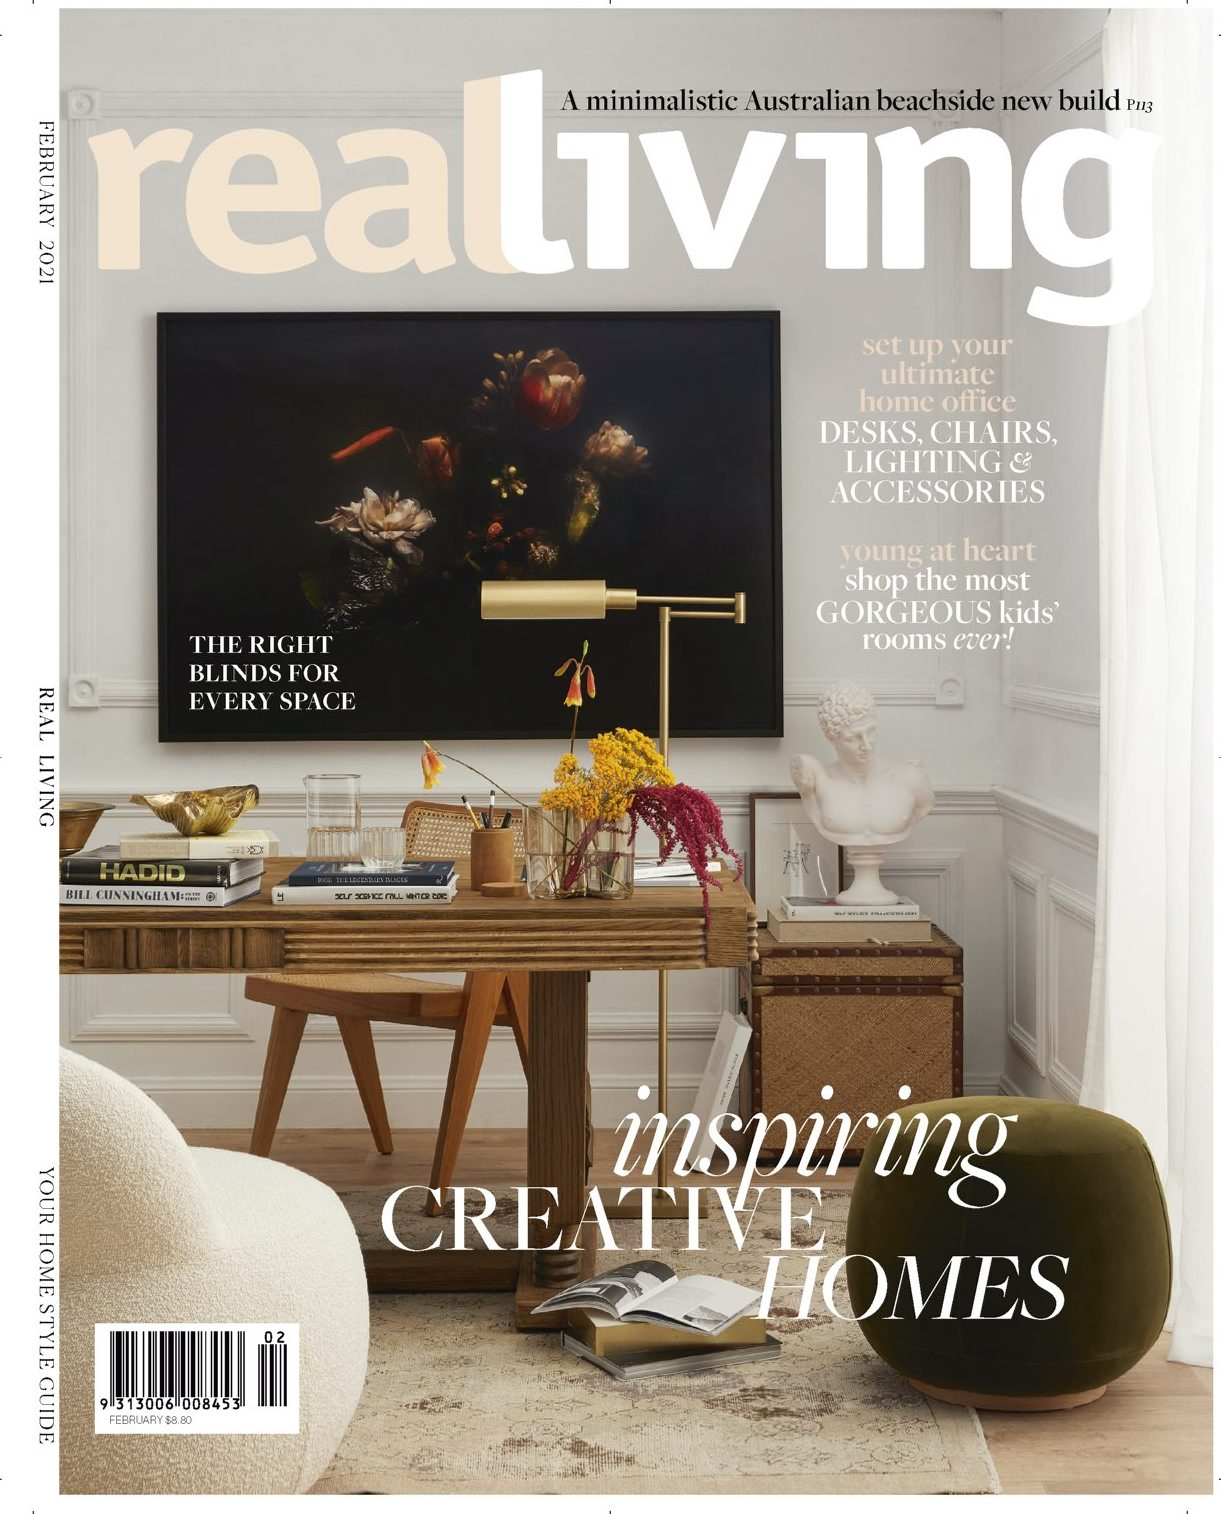 Makers' Mrkt ceramics and homewares as seen in Real Living Magazine Australia February 2021